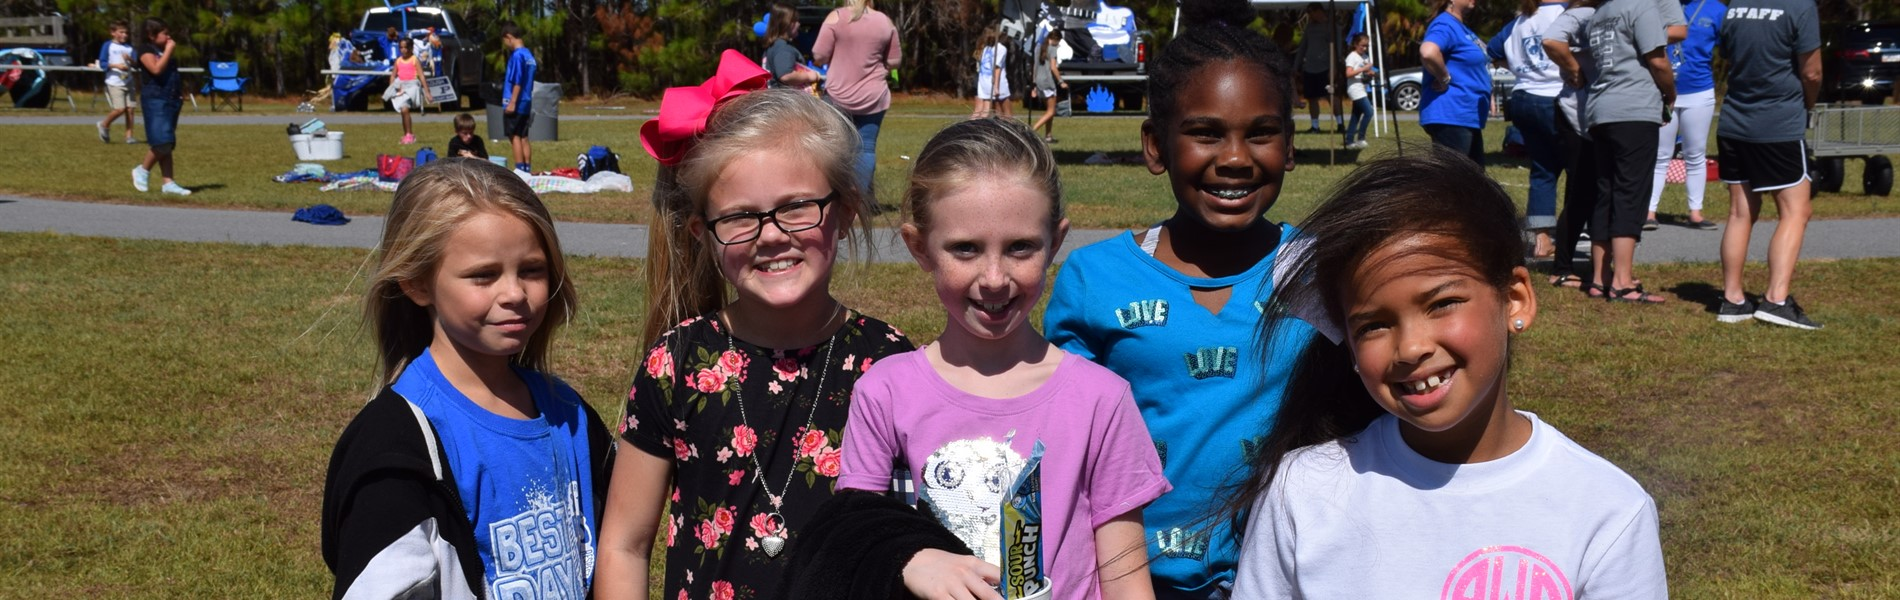 Children enjoying the sunshine and activities of the PBIS celebration.